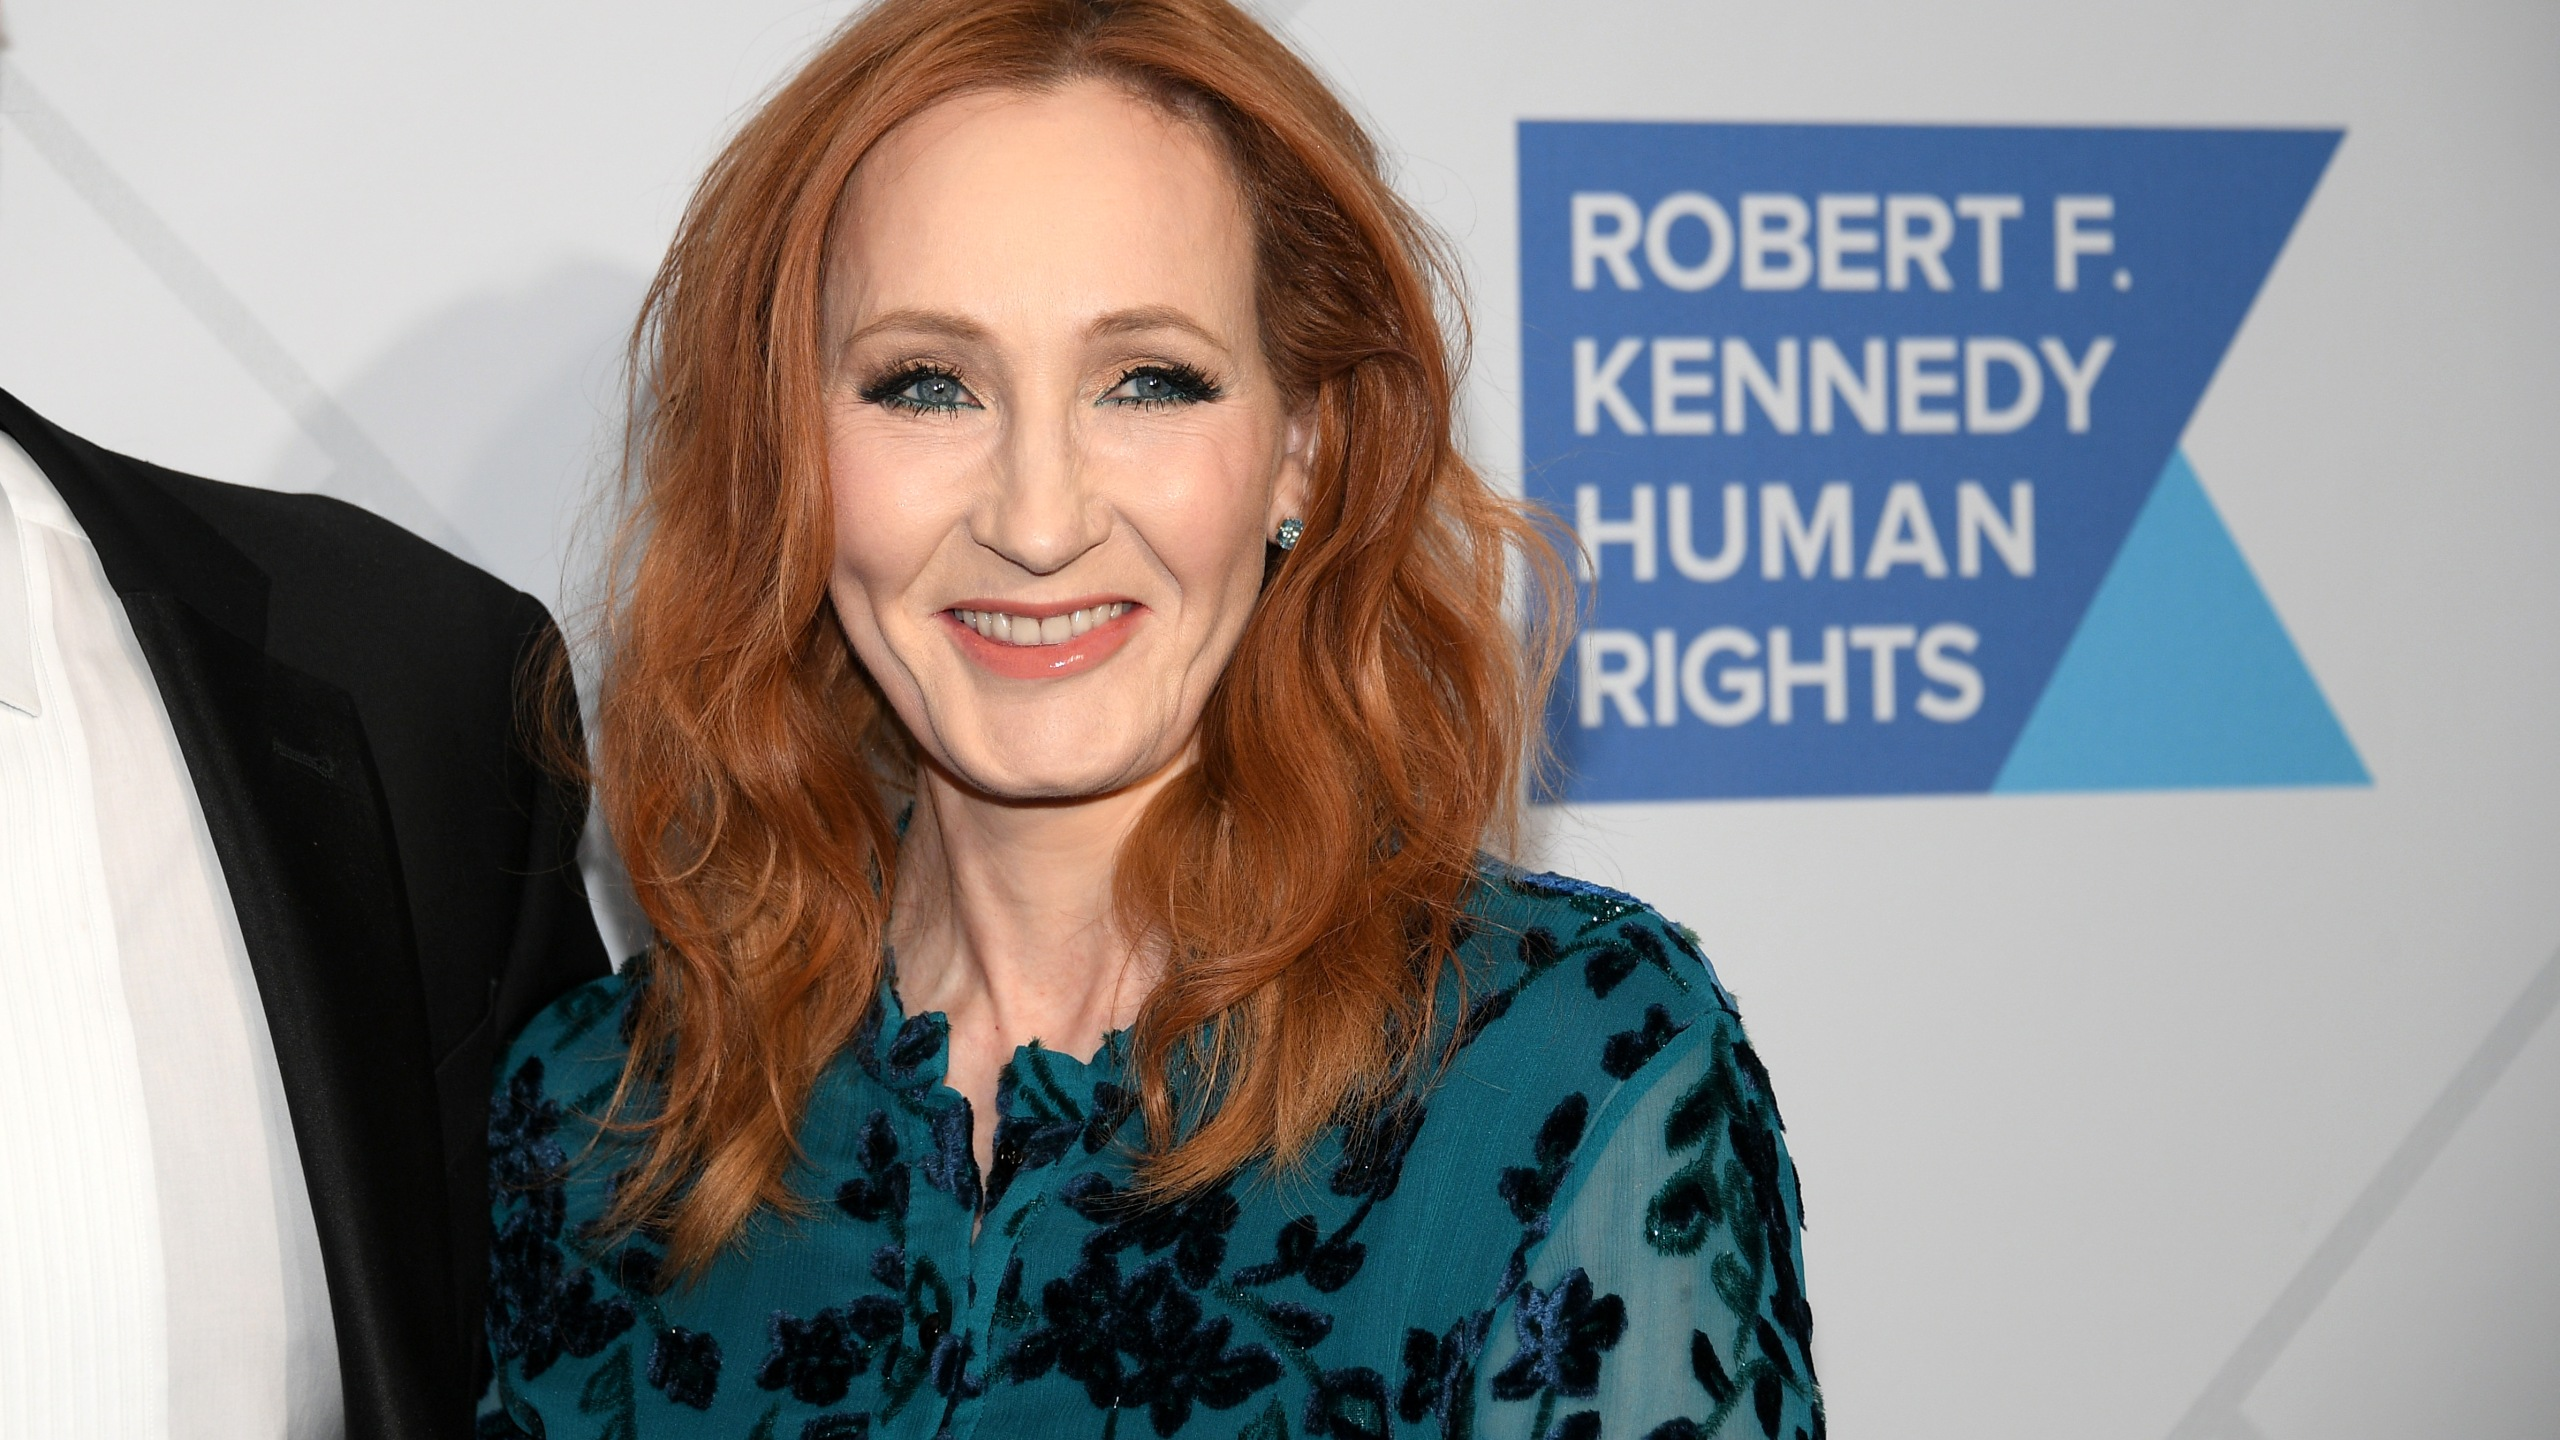 Author J.K. Rowling arrives at the RFK Ripple of Hope Awards in New York City on Dec. 12, 2019. (Credit: Dia Dipasupil / Getty Images)